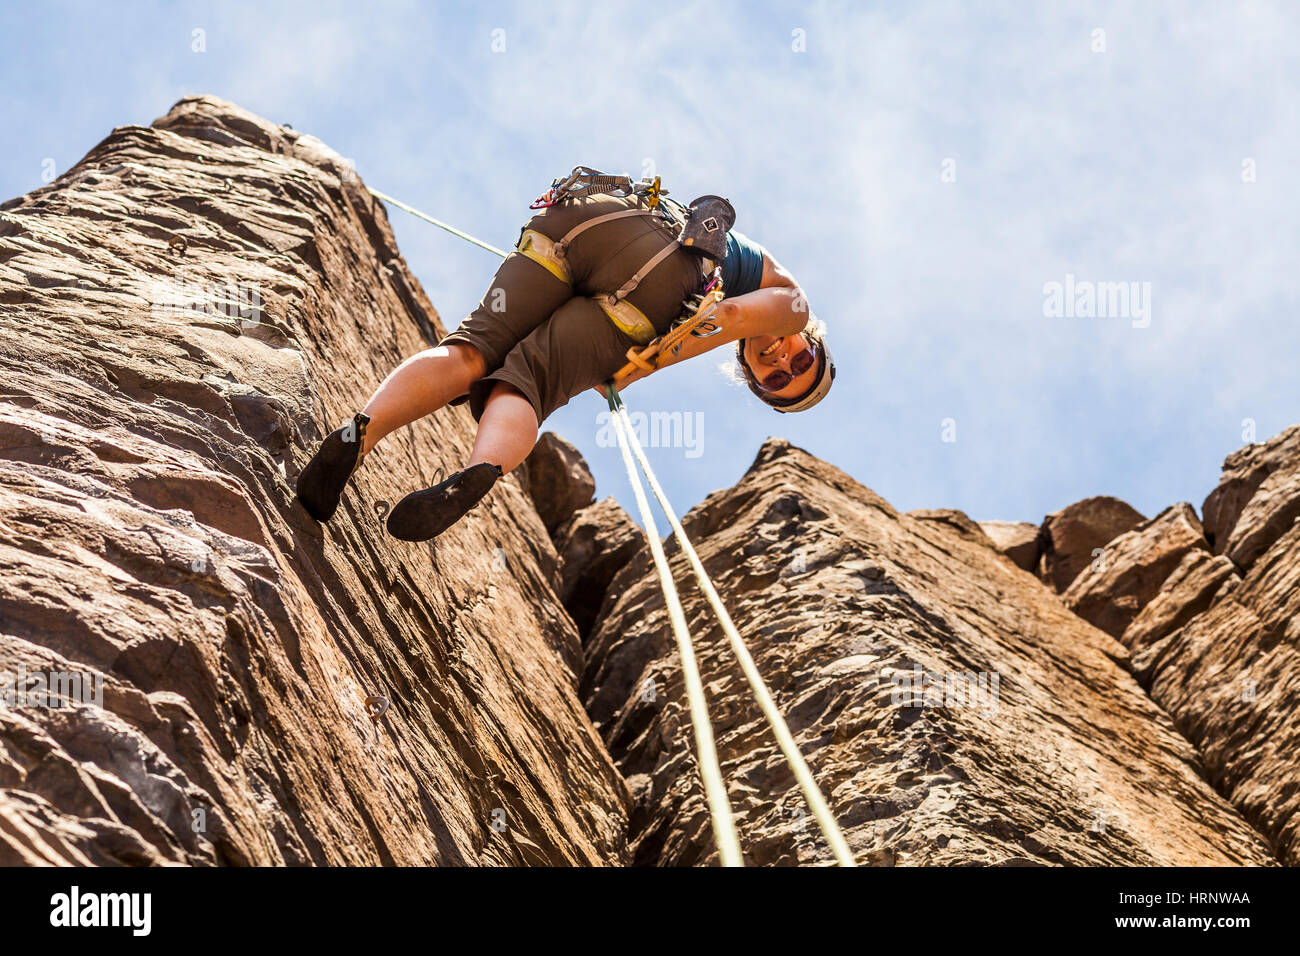 Looking up at a woman who is rappelling down from a rock climb at Frenchmans Coulee in Eastern Washington, USA. Stock Photo